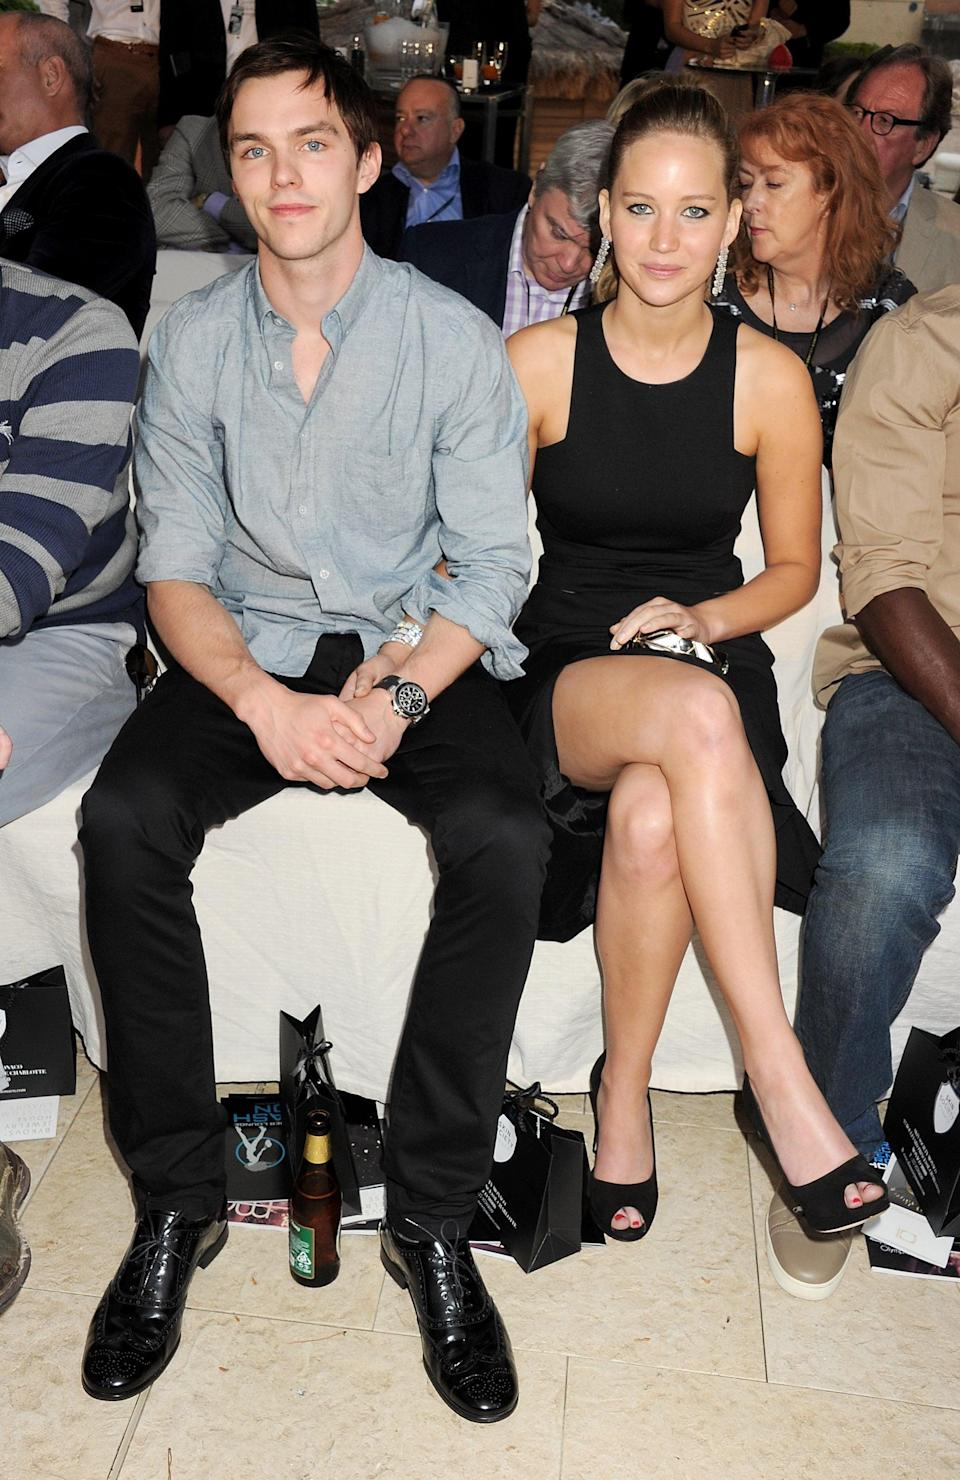 """<p>Jennifer and Nicholas got together on the set of <strong>X-Men: First Class</strong> in 2010, and dated on and off until 2014, right around the time when <strong>X-Men: Days of Future Past</strong> wrapped. Since then, the two have had to work together on <strong>X-Men: Apocalypse</strong>, which released in 2016, and <strong>Dark Phoenix</strong>, which came out in 2019. Luckily, their characters, Beast and Mystique, didn't have <em>too</em> many intimate scenes. </p> <p>During a January 2019 interview with <strong>Evening Standard</strong>, Nicholas said that <a href=""""http://www.standard.co.uk/lifestyle/esmagazine/nicholas-hoult-fatherhood-acting-a4047041.html"""" class=""""link rapid-noclick-resp"""" rel=""""nofollow noopener"""" target=""""_blank"""" data-ylk=""""slk:working with Jennifer post-breakup wasn't at all weird"""">working with Jennifer post-breakup wasn't at all weird</a>. """"It's pretty similar to <strong>Skins</strong>,"""" he said, referring to the show he starred in at the beginning of his career. """"We're a big family. We've been doing those movies since we were 20 years old. As much as the<strong> Skins </strong>crowd grew up together, the <strong>X-Men</strong> crowd really grew up together. It's been a good eight, nine years making those movies. We've all got to get along. We've all got to have fun."""" </p>"""